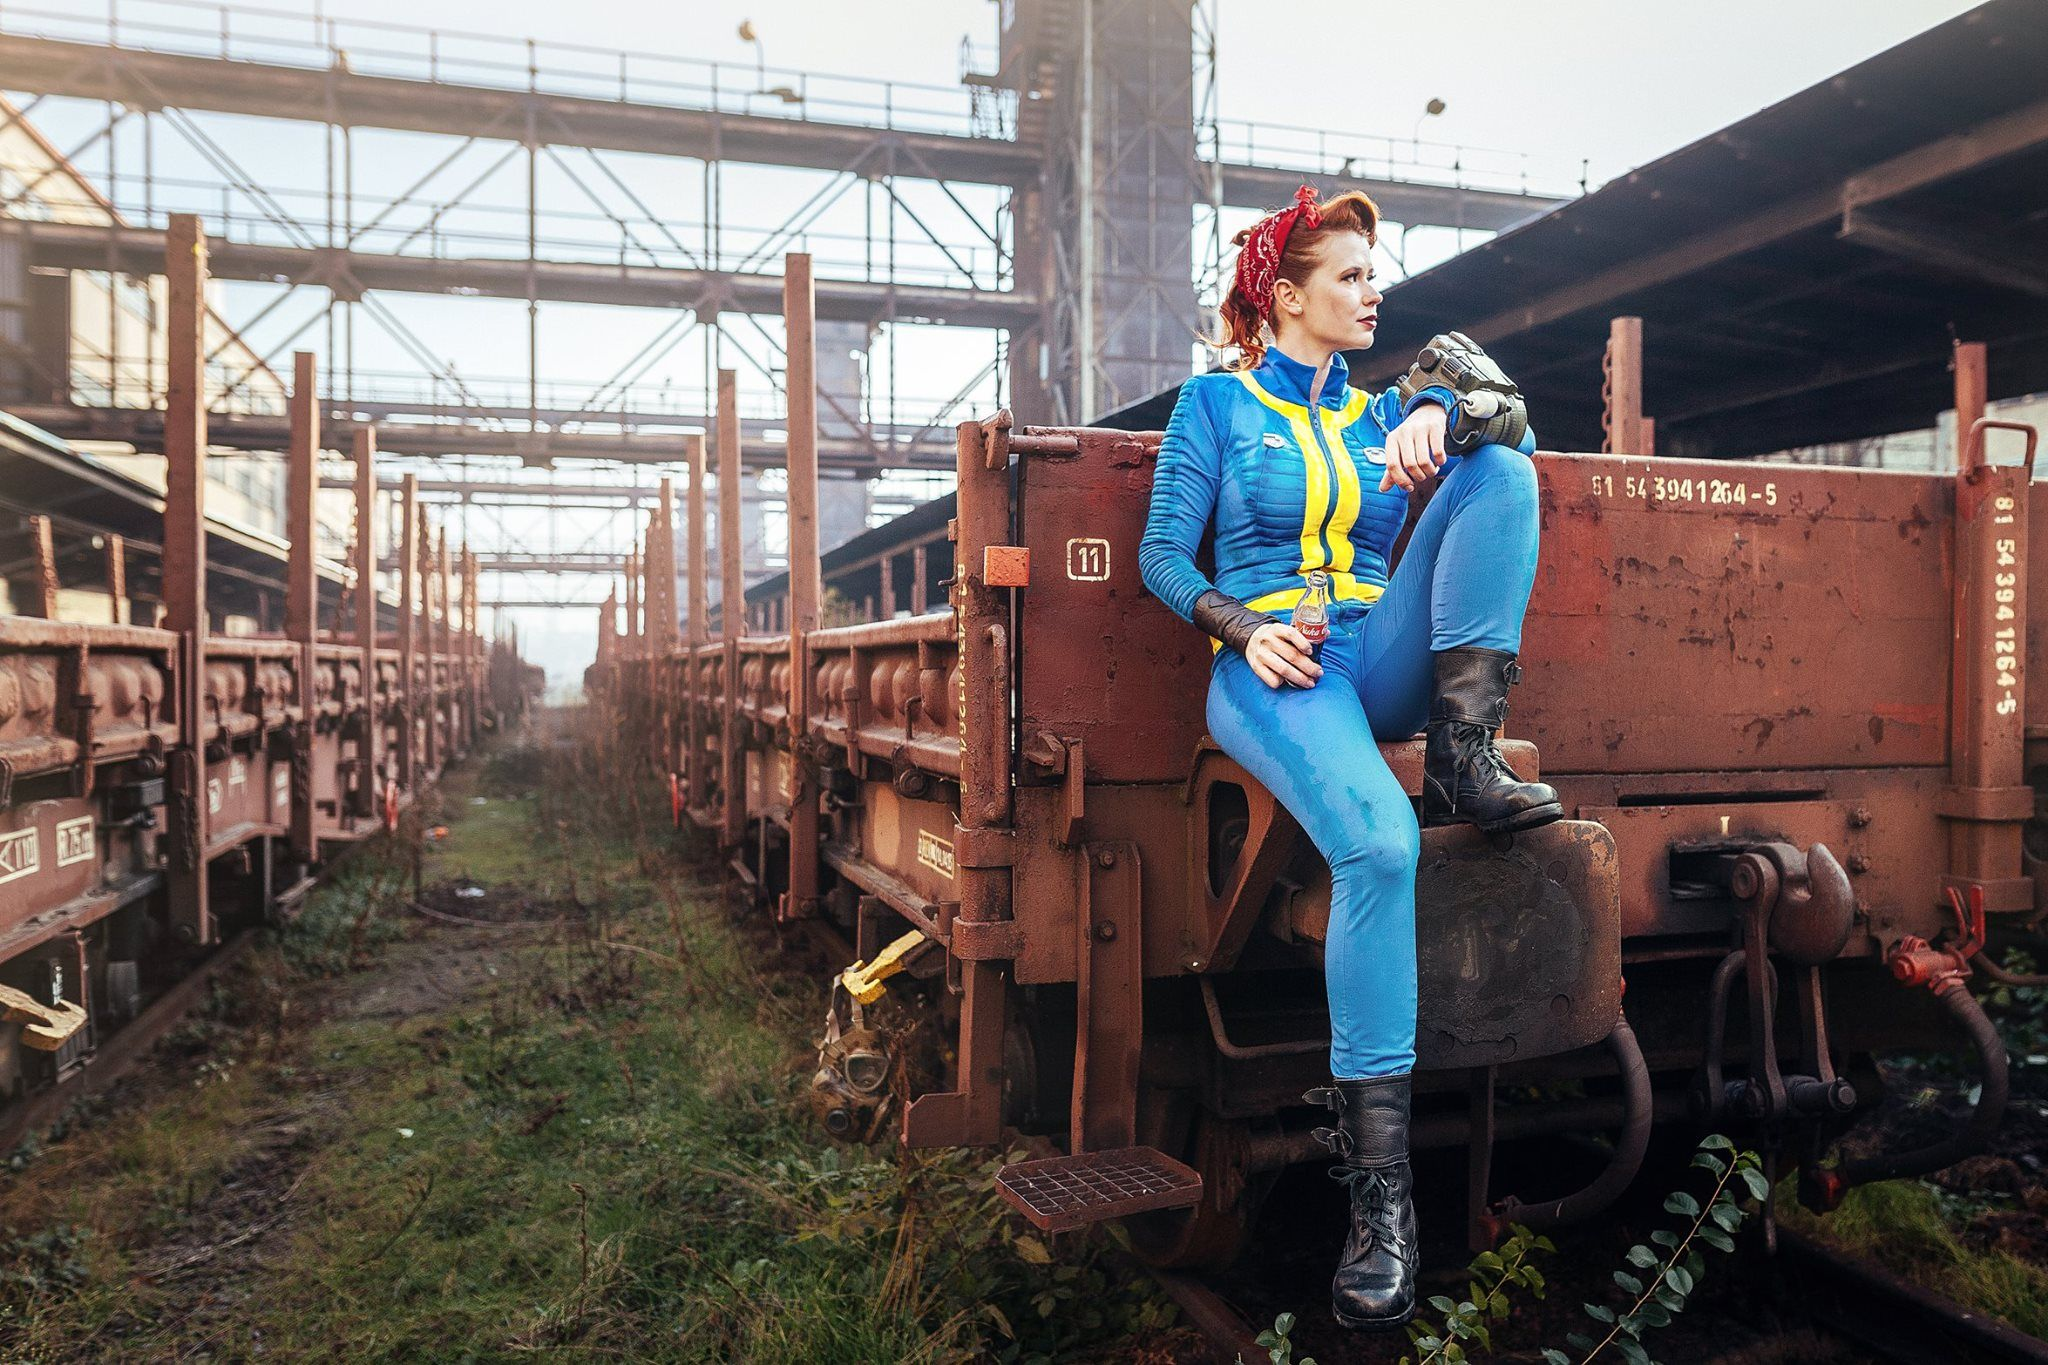 Fallout 4 cosplay - Album on Imgur